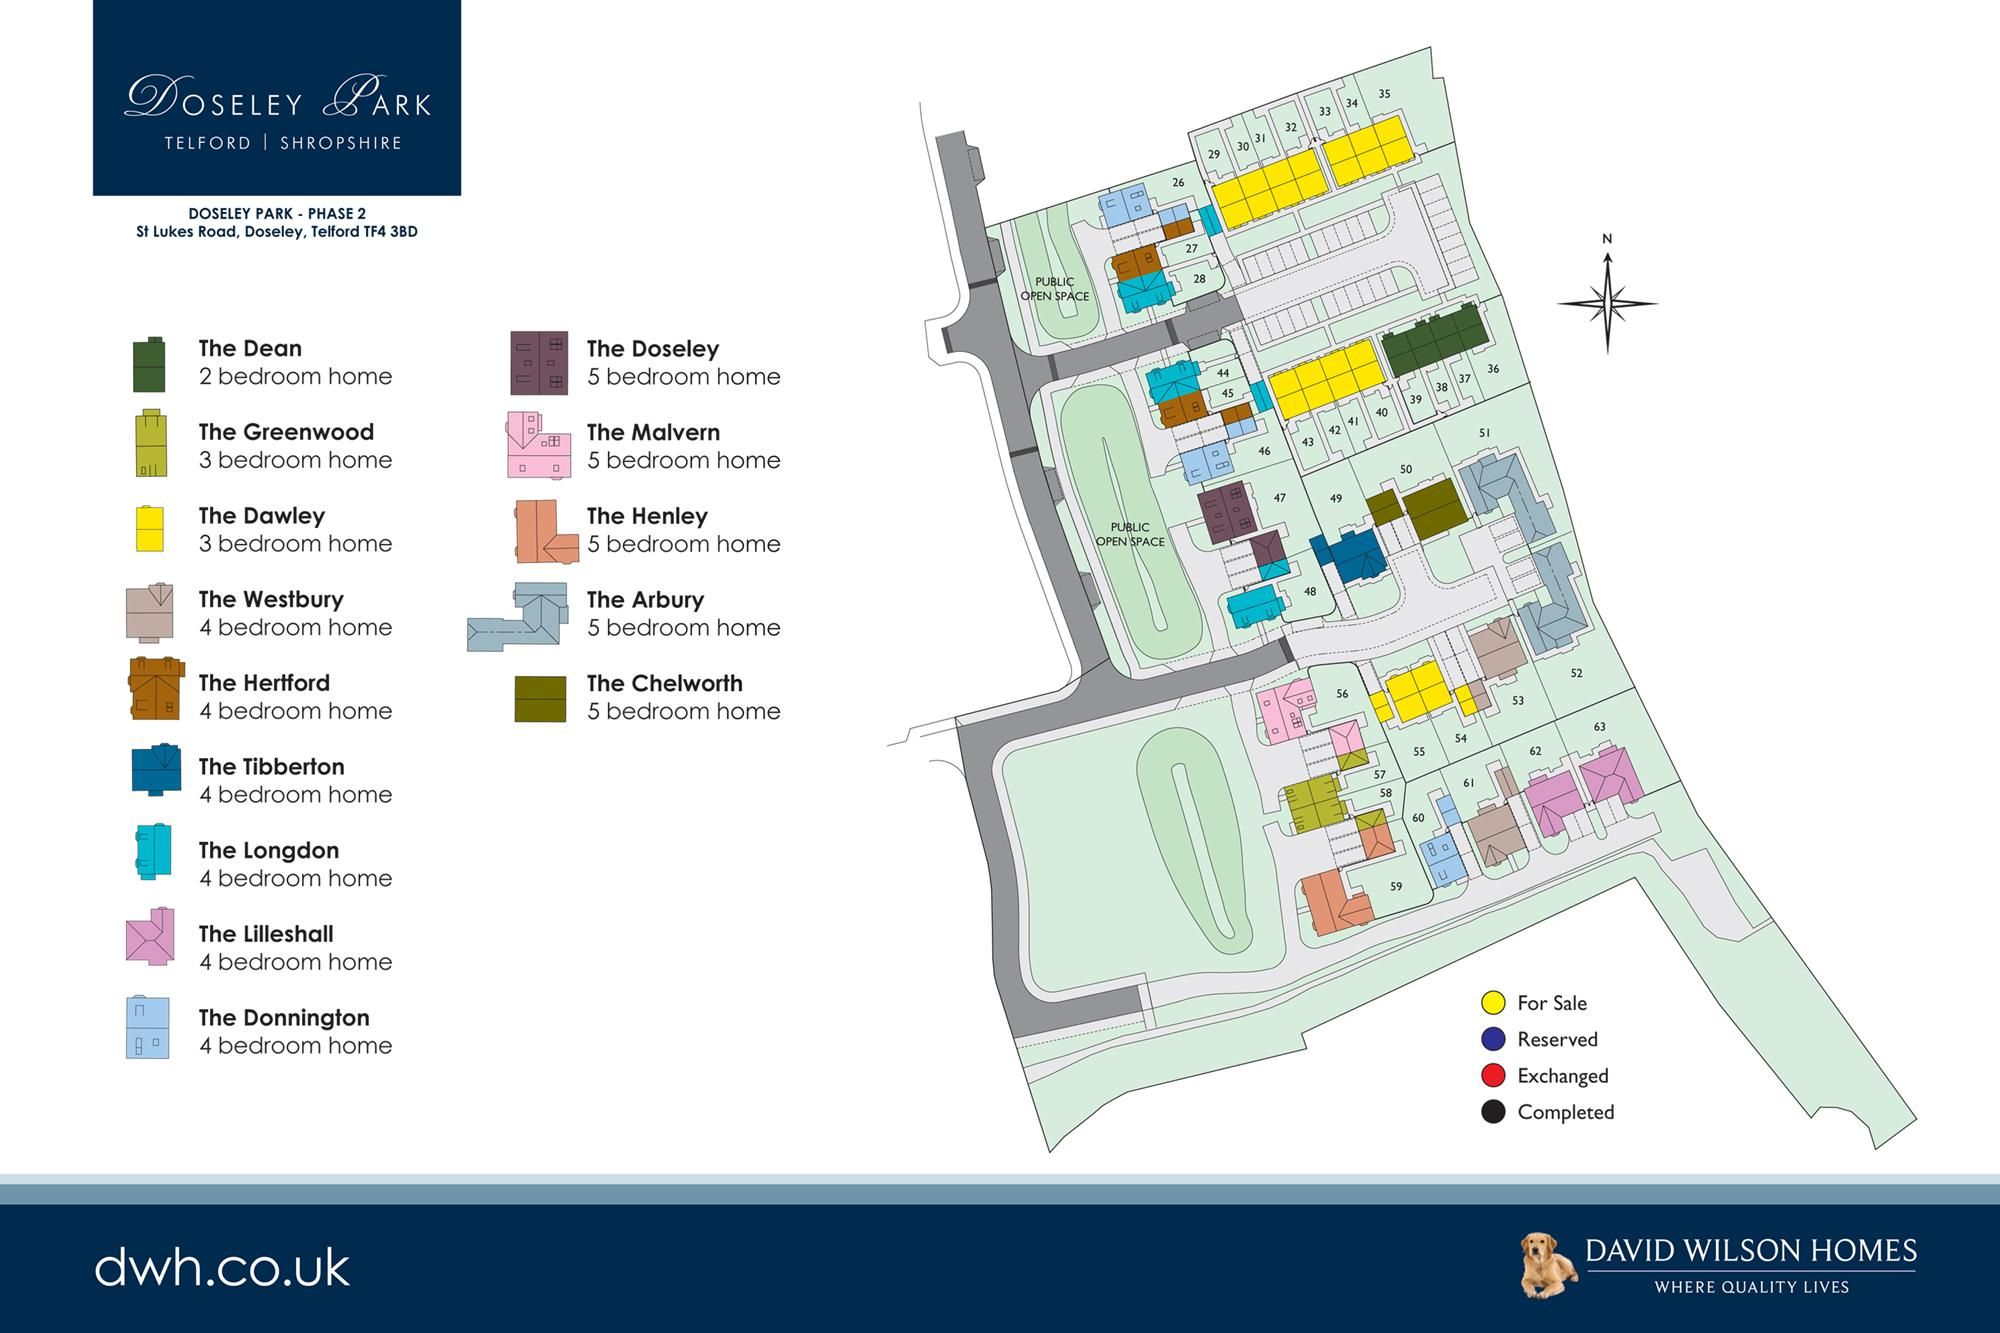 Doseley Park phase 2 site plan